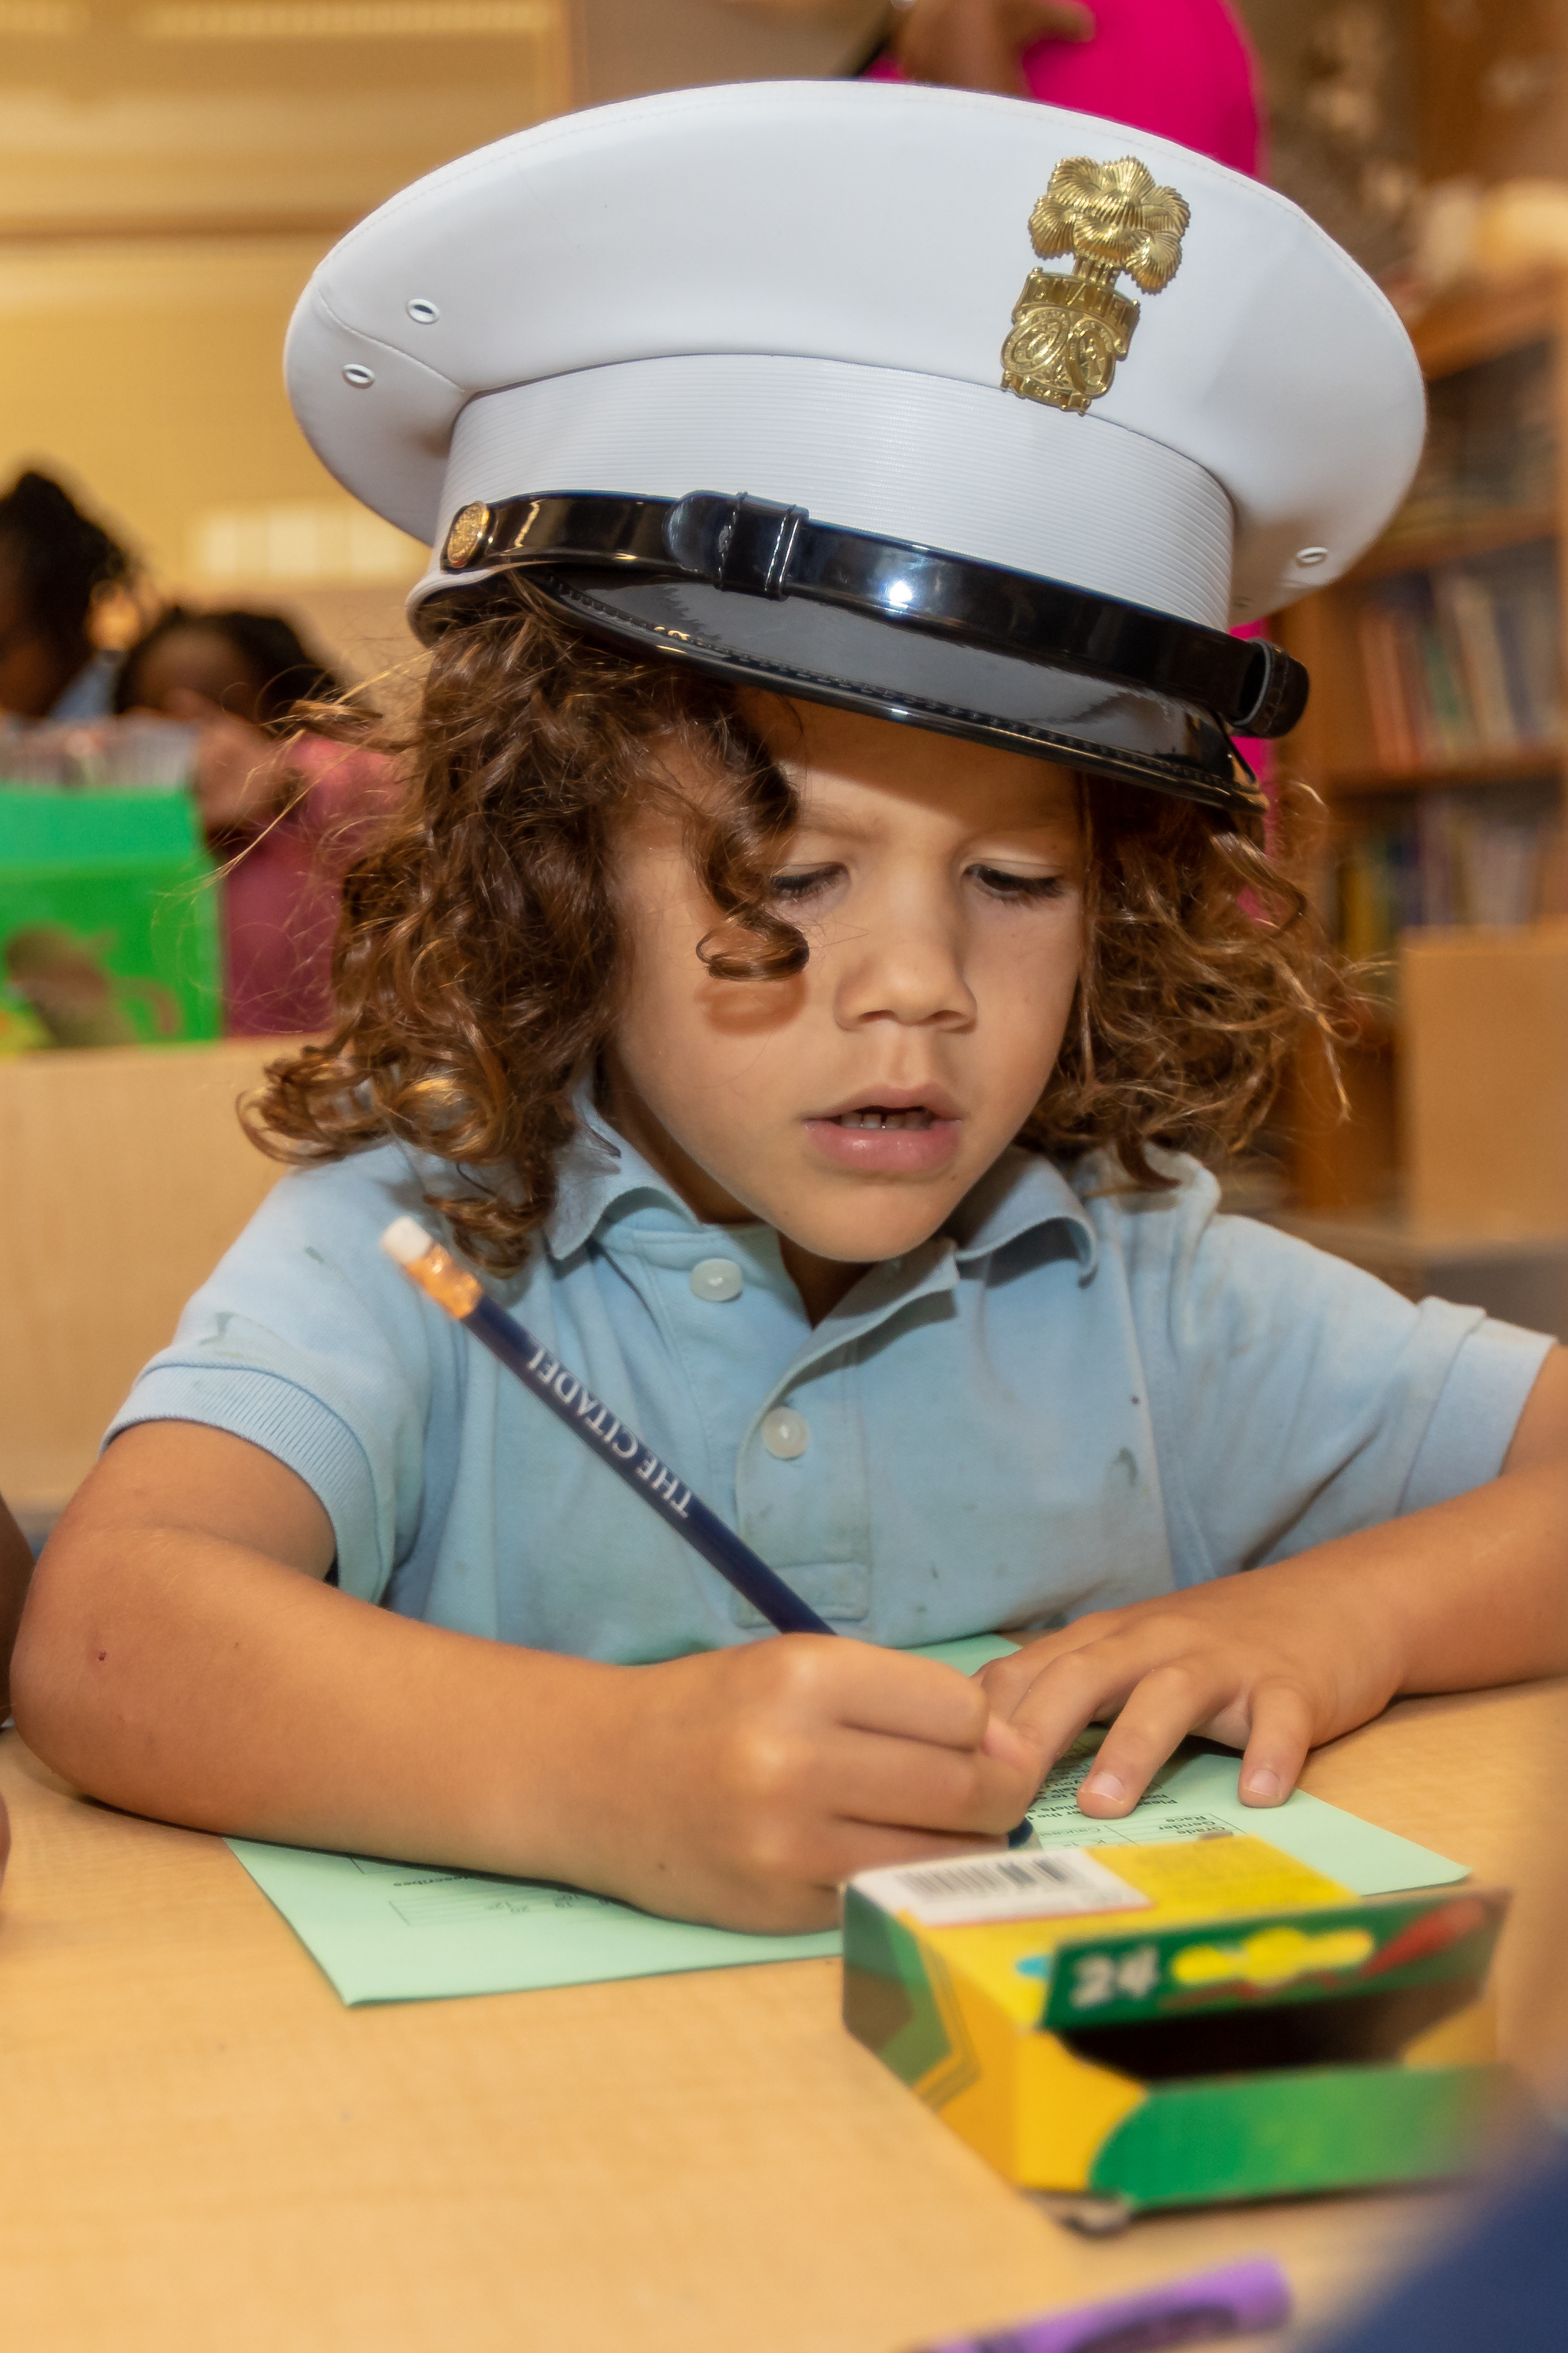 James Simons elementary student enjoys pretending to be a cadet while making a card for her hero